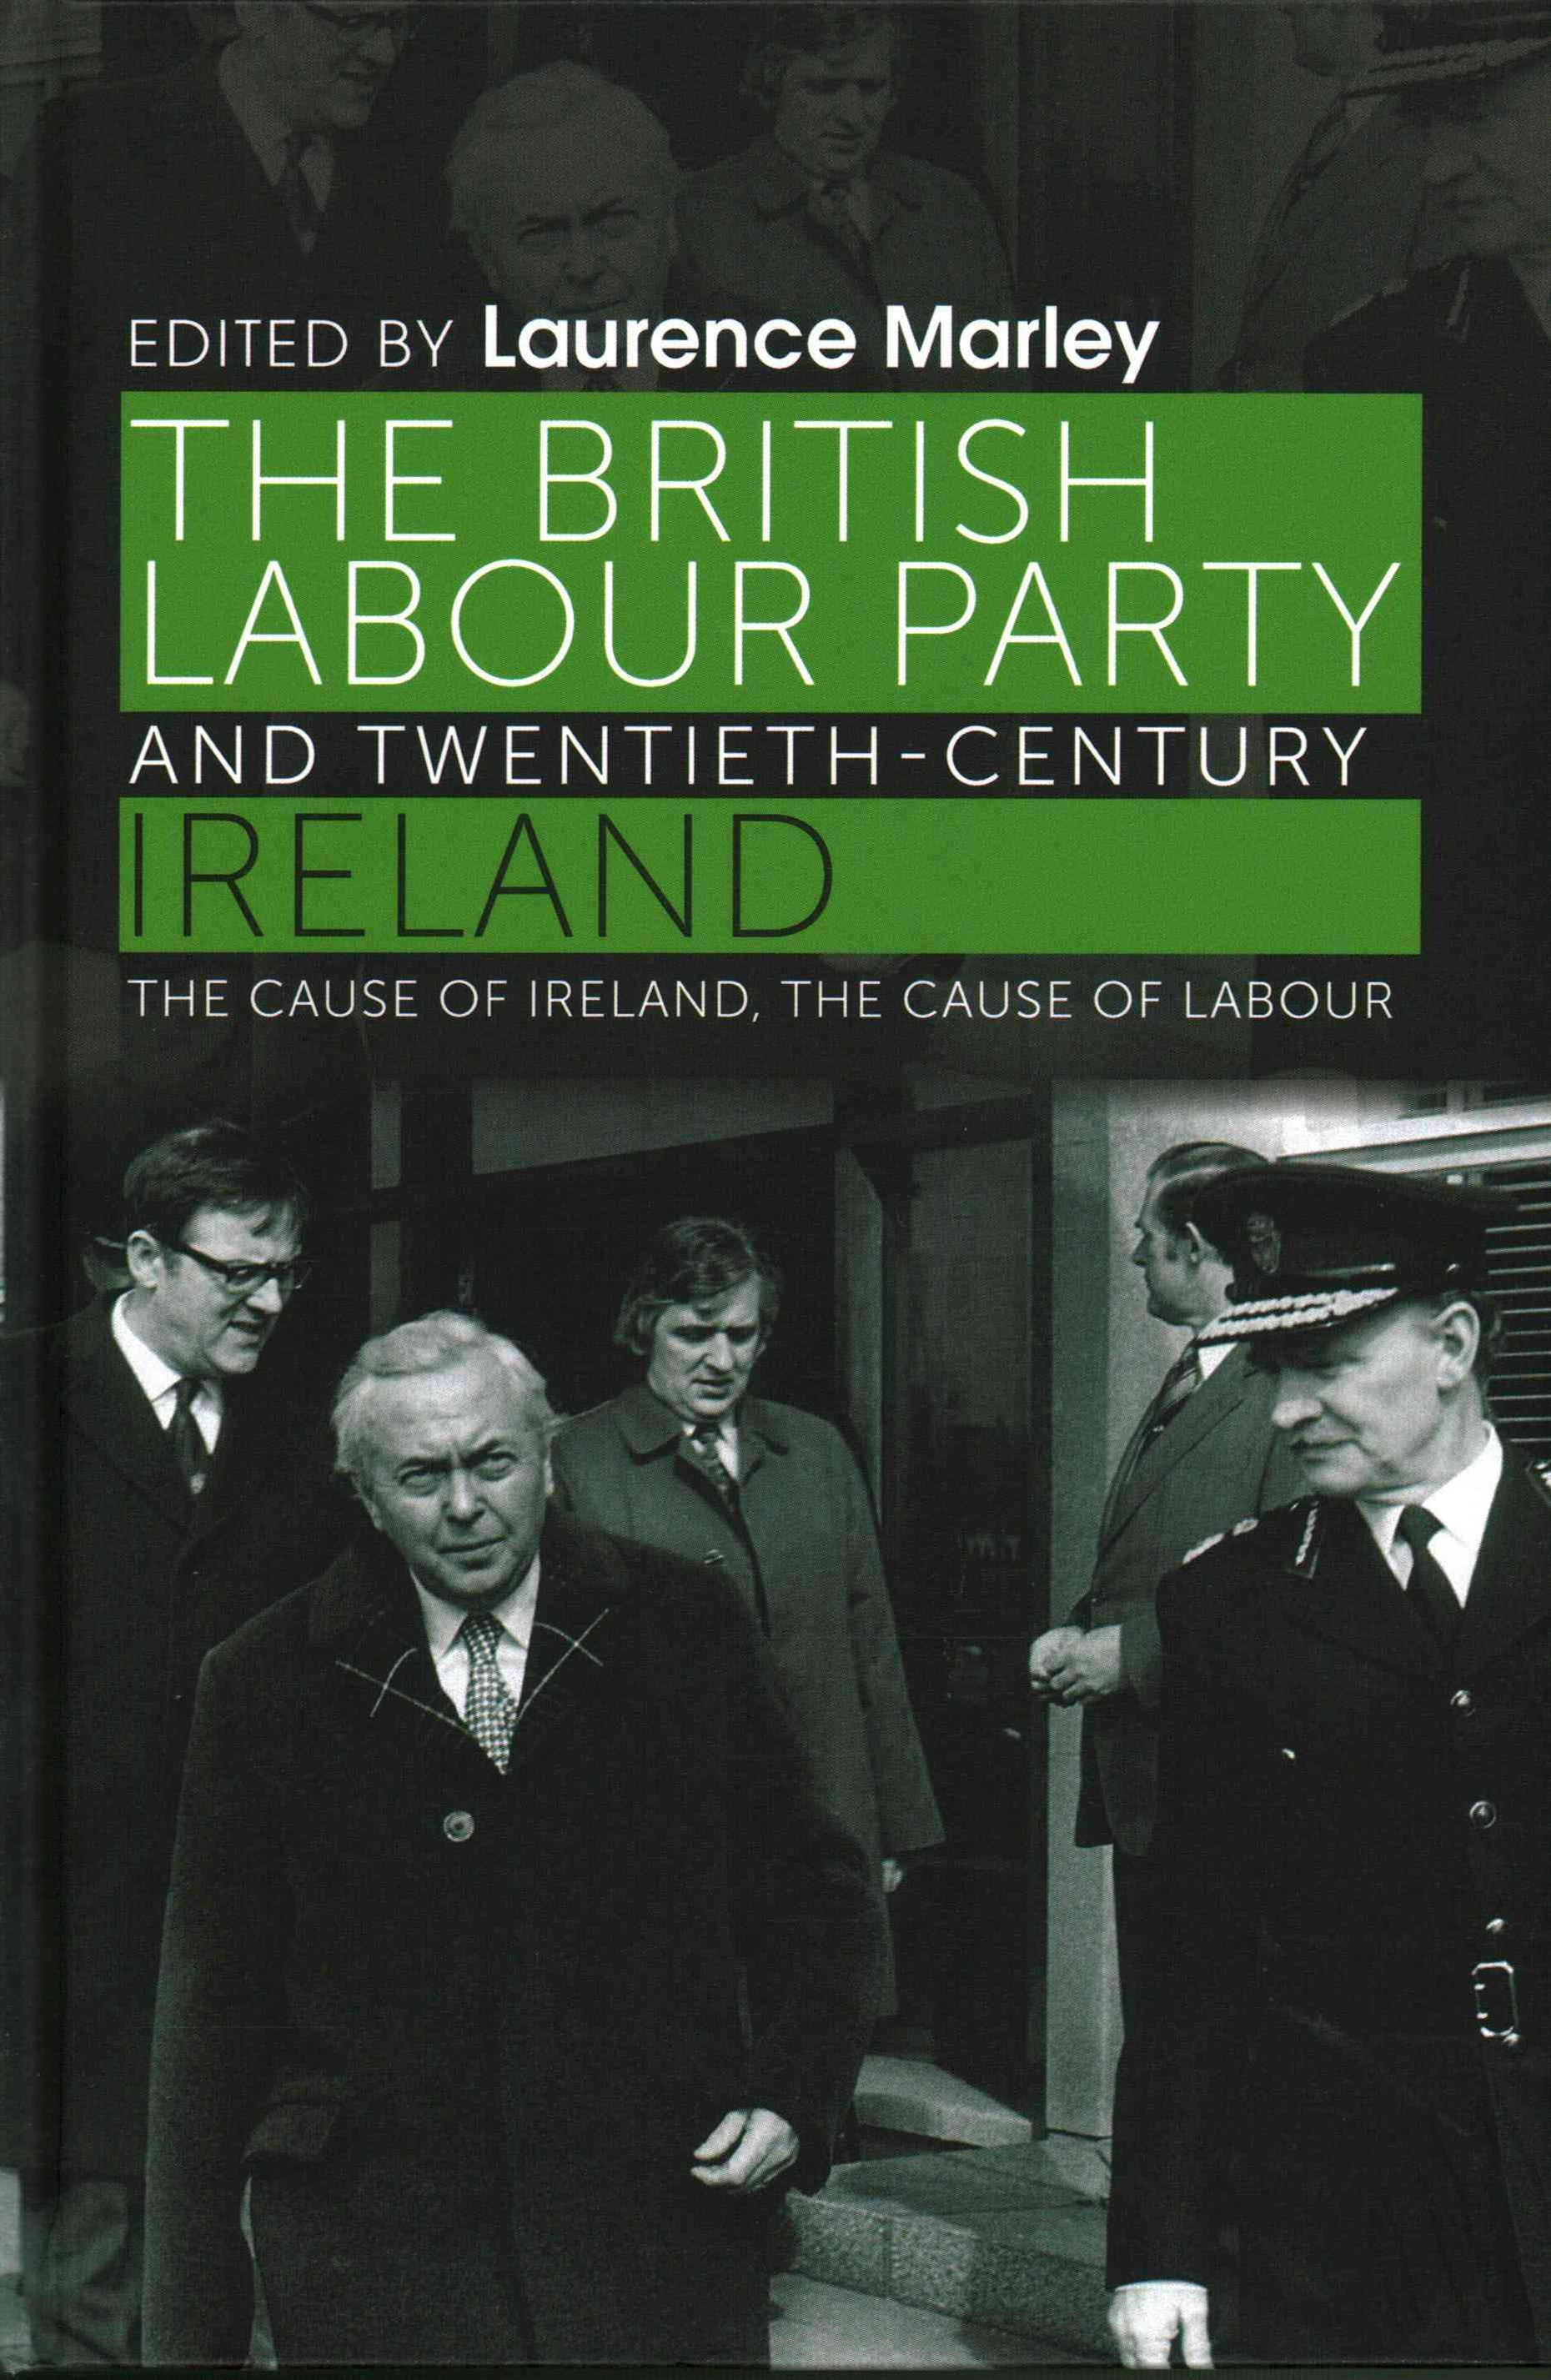 British Labour Party and Twentieth-Century Ireland